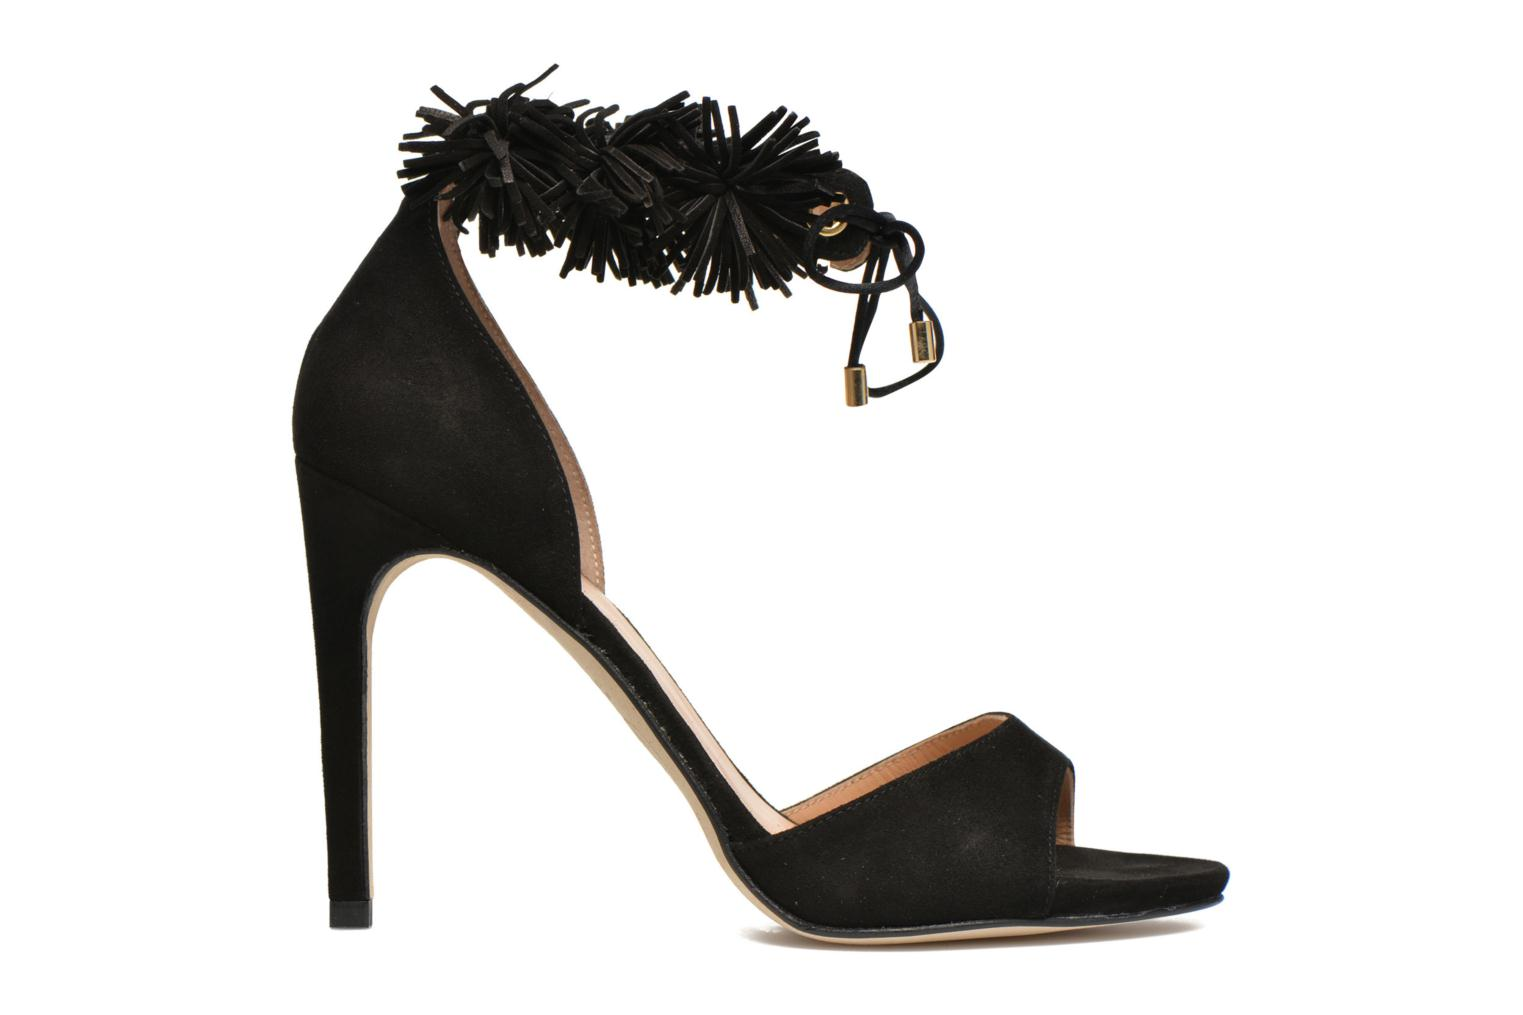 Marques Chaussure femme Made by SARENZA femme Frida Banana #6 Ante noir